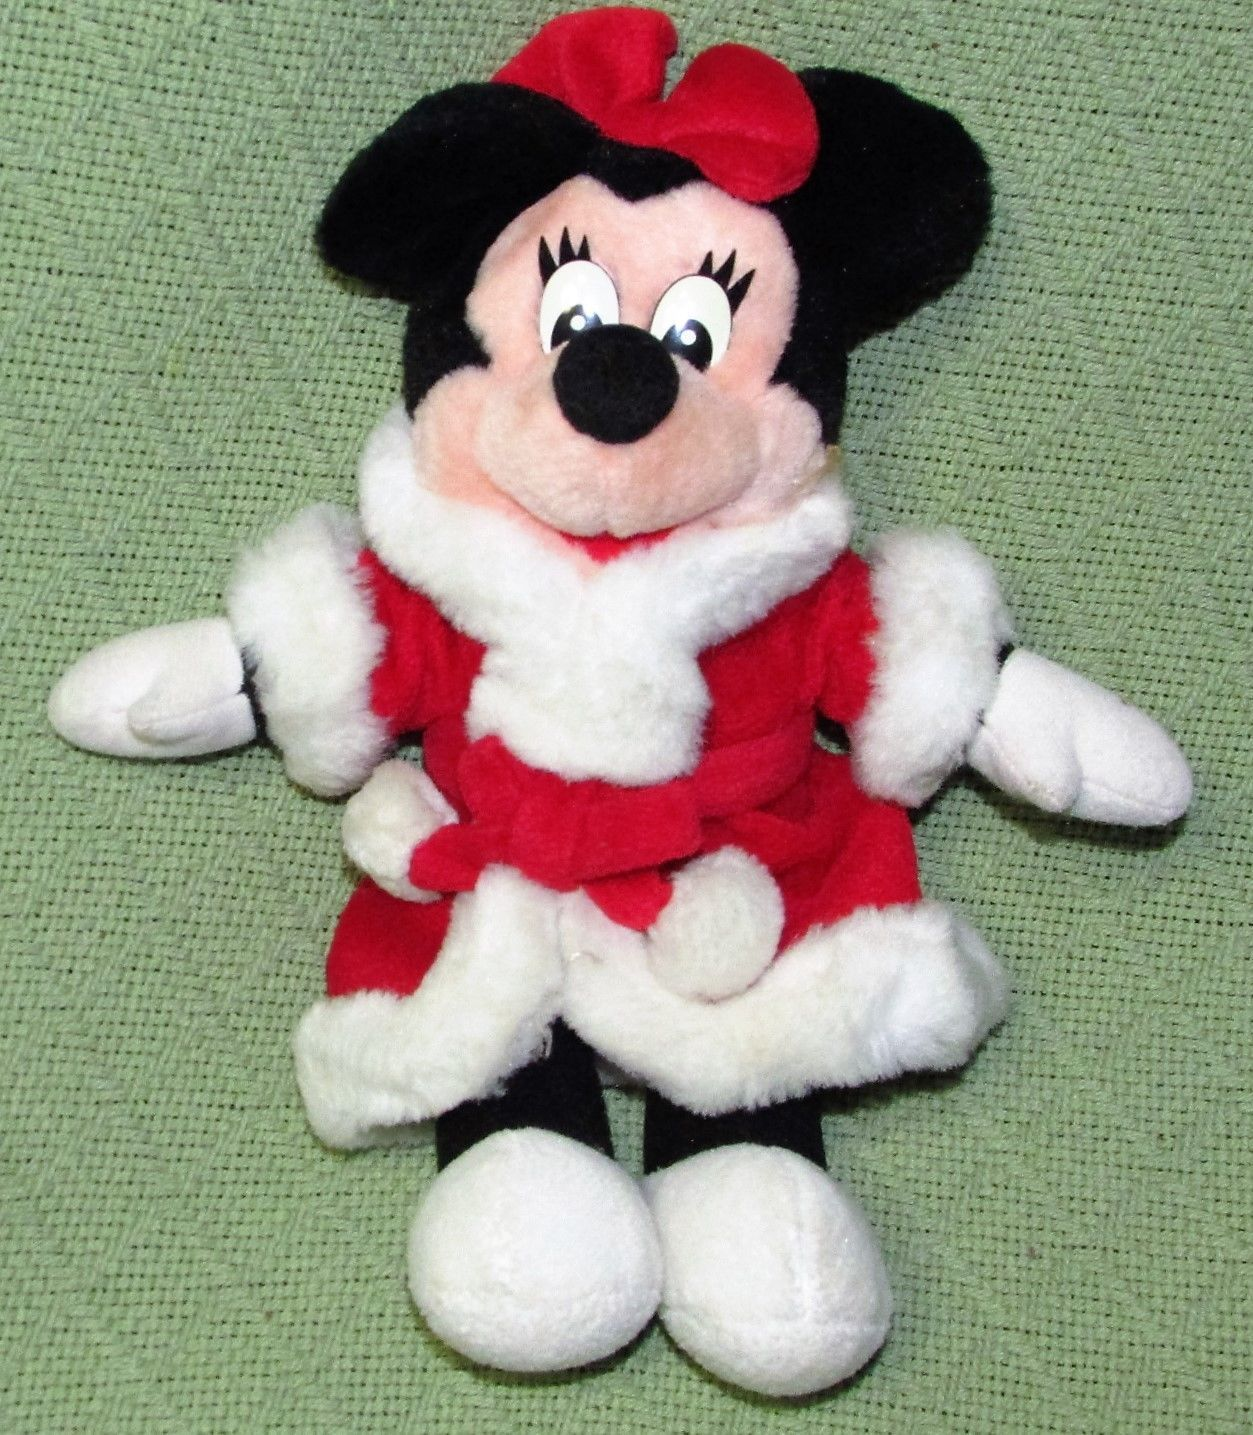 DISNEY STORE BABY Pink Easter Bunny & Mrs. Santa Claus Minnie Mouse Plush Dolls image 7